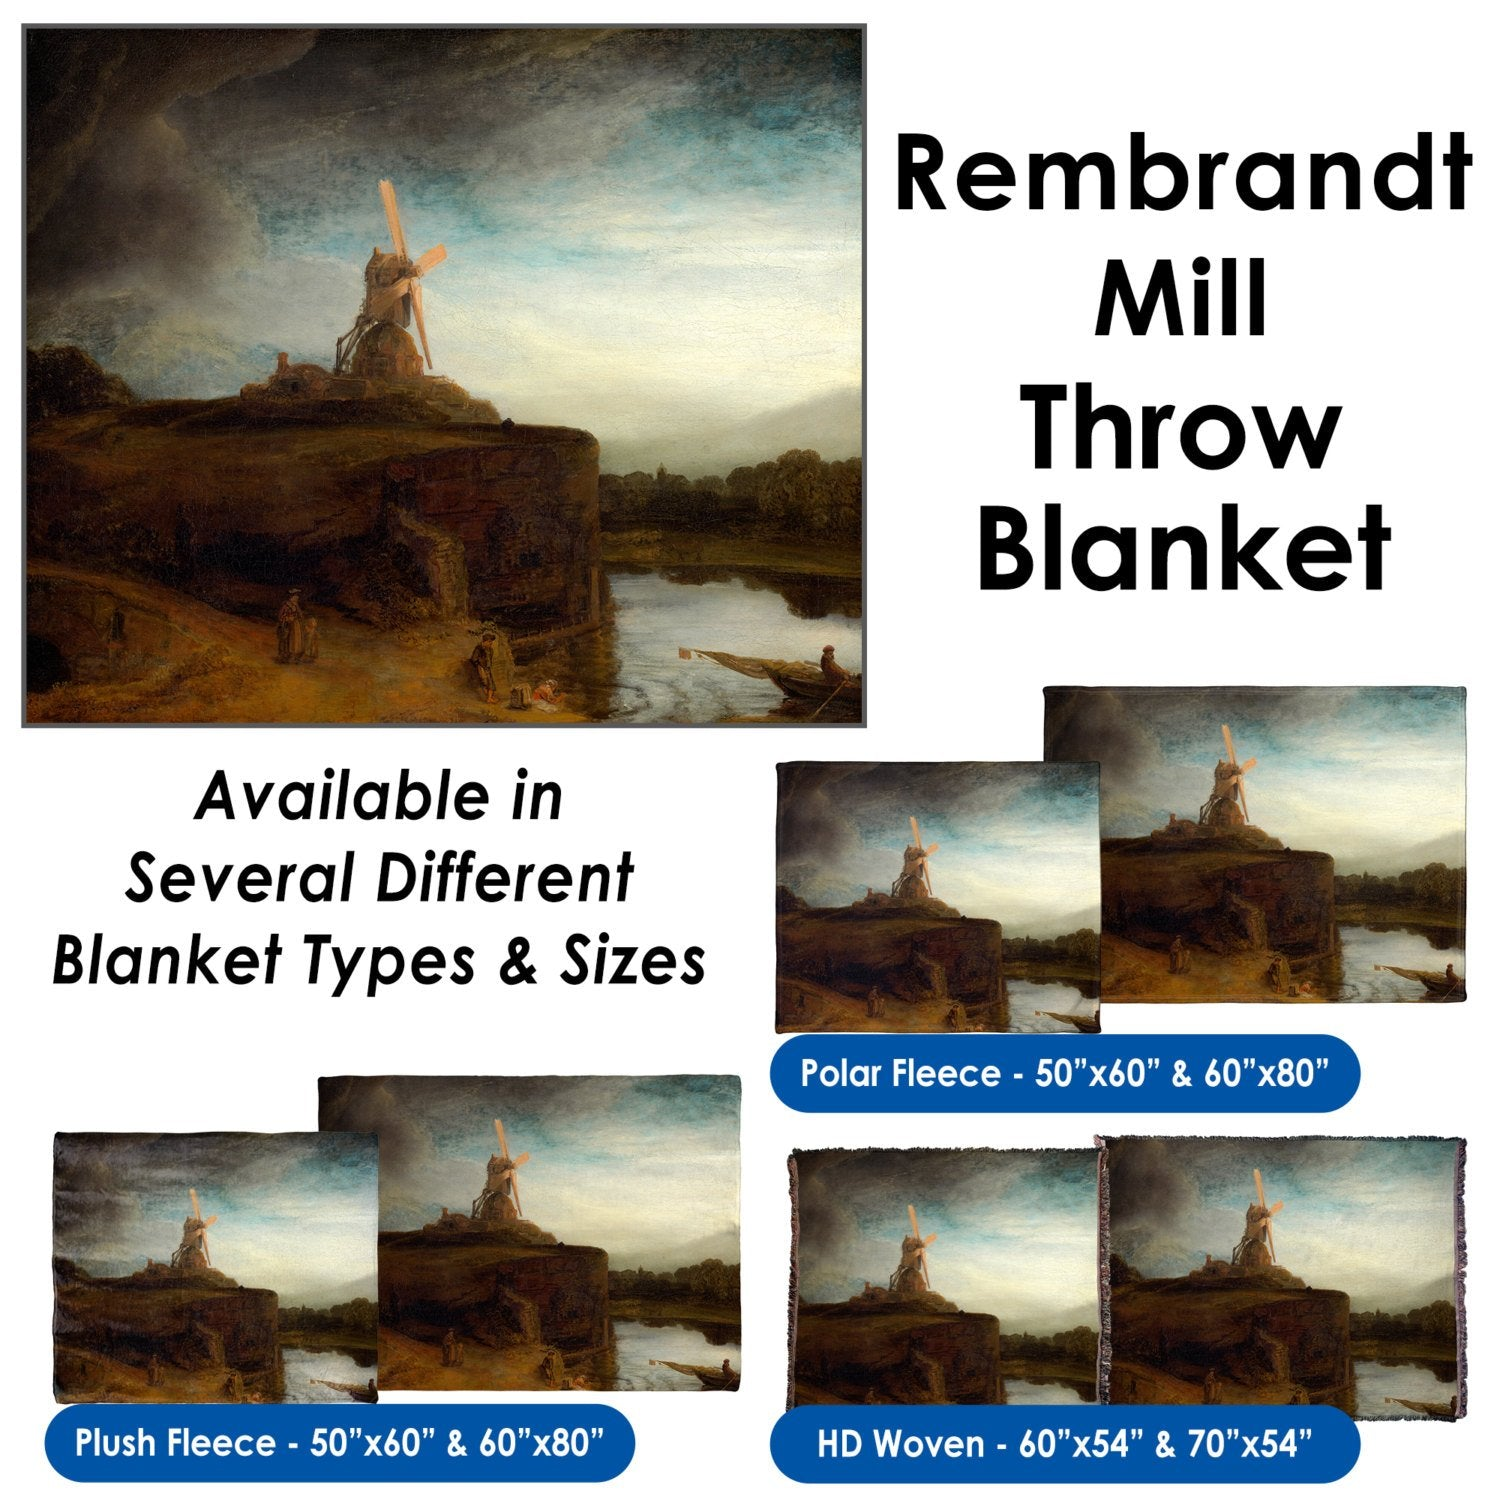 Rembrandt's The Mill – Throw Blanket / Tapestry Wall Hanging